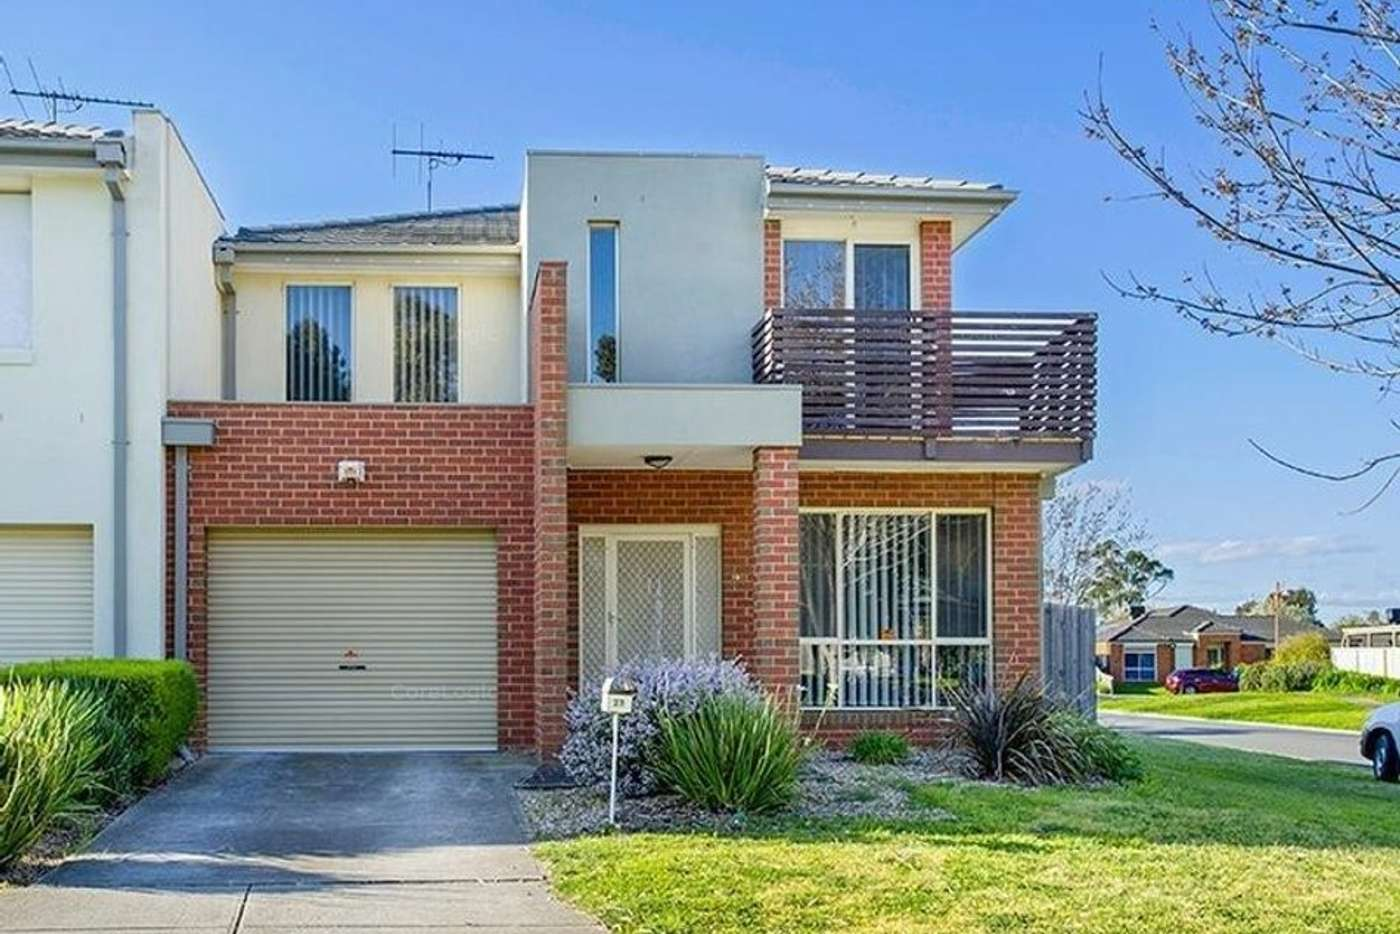 Main view of Homely house listing, 23 Almond Crescent, Werribee VIC 3030